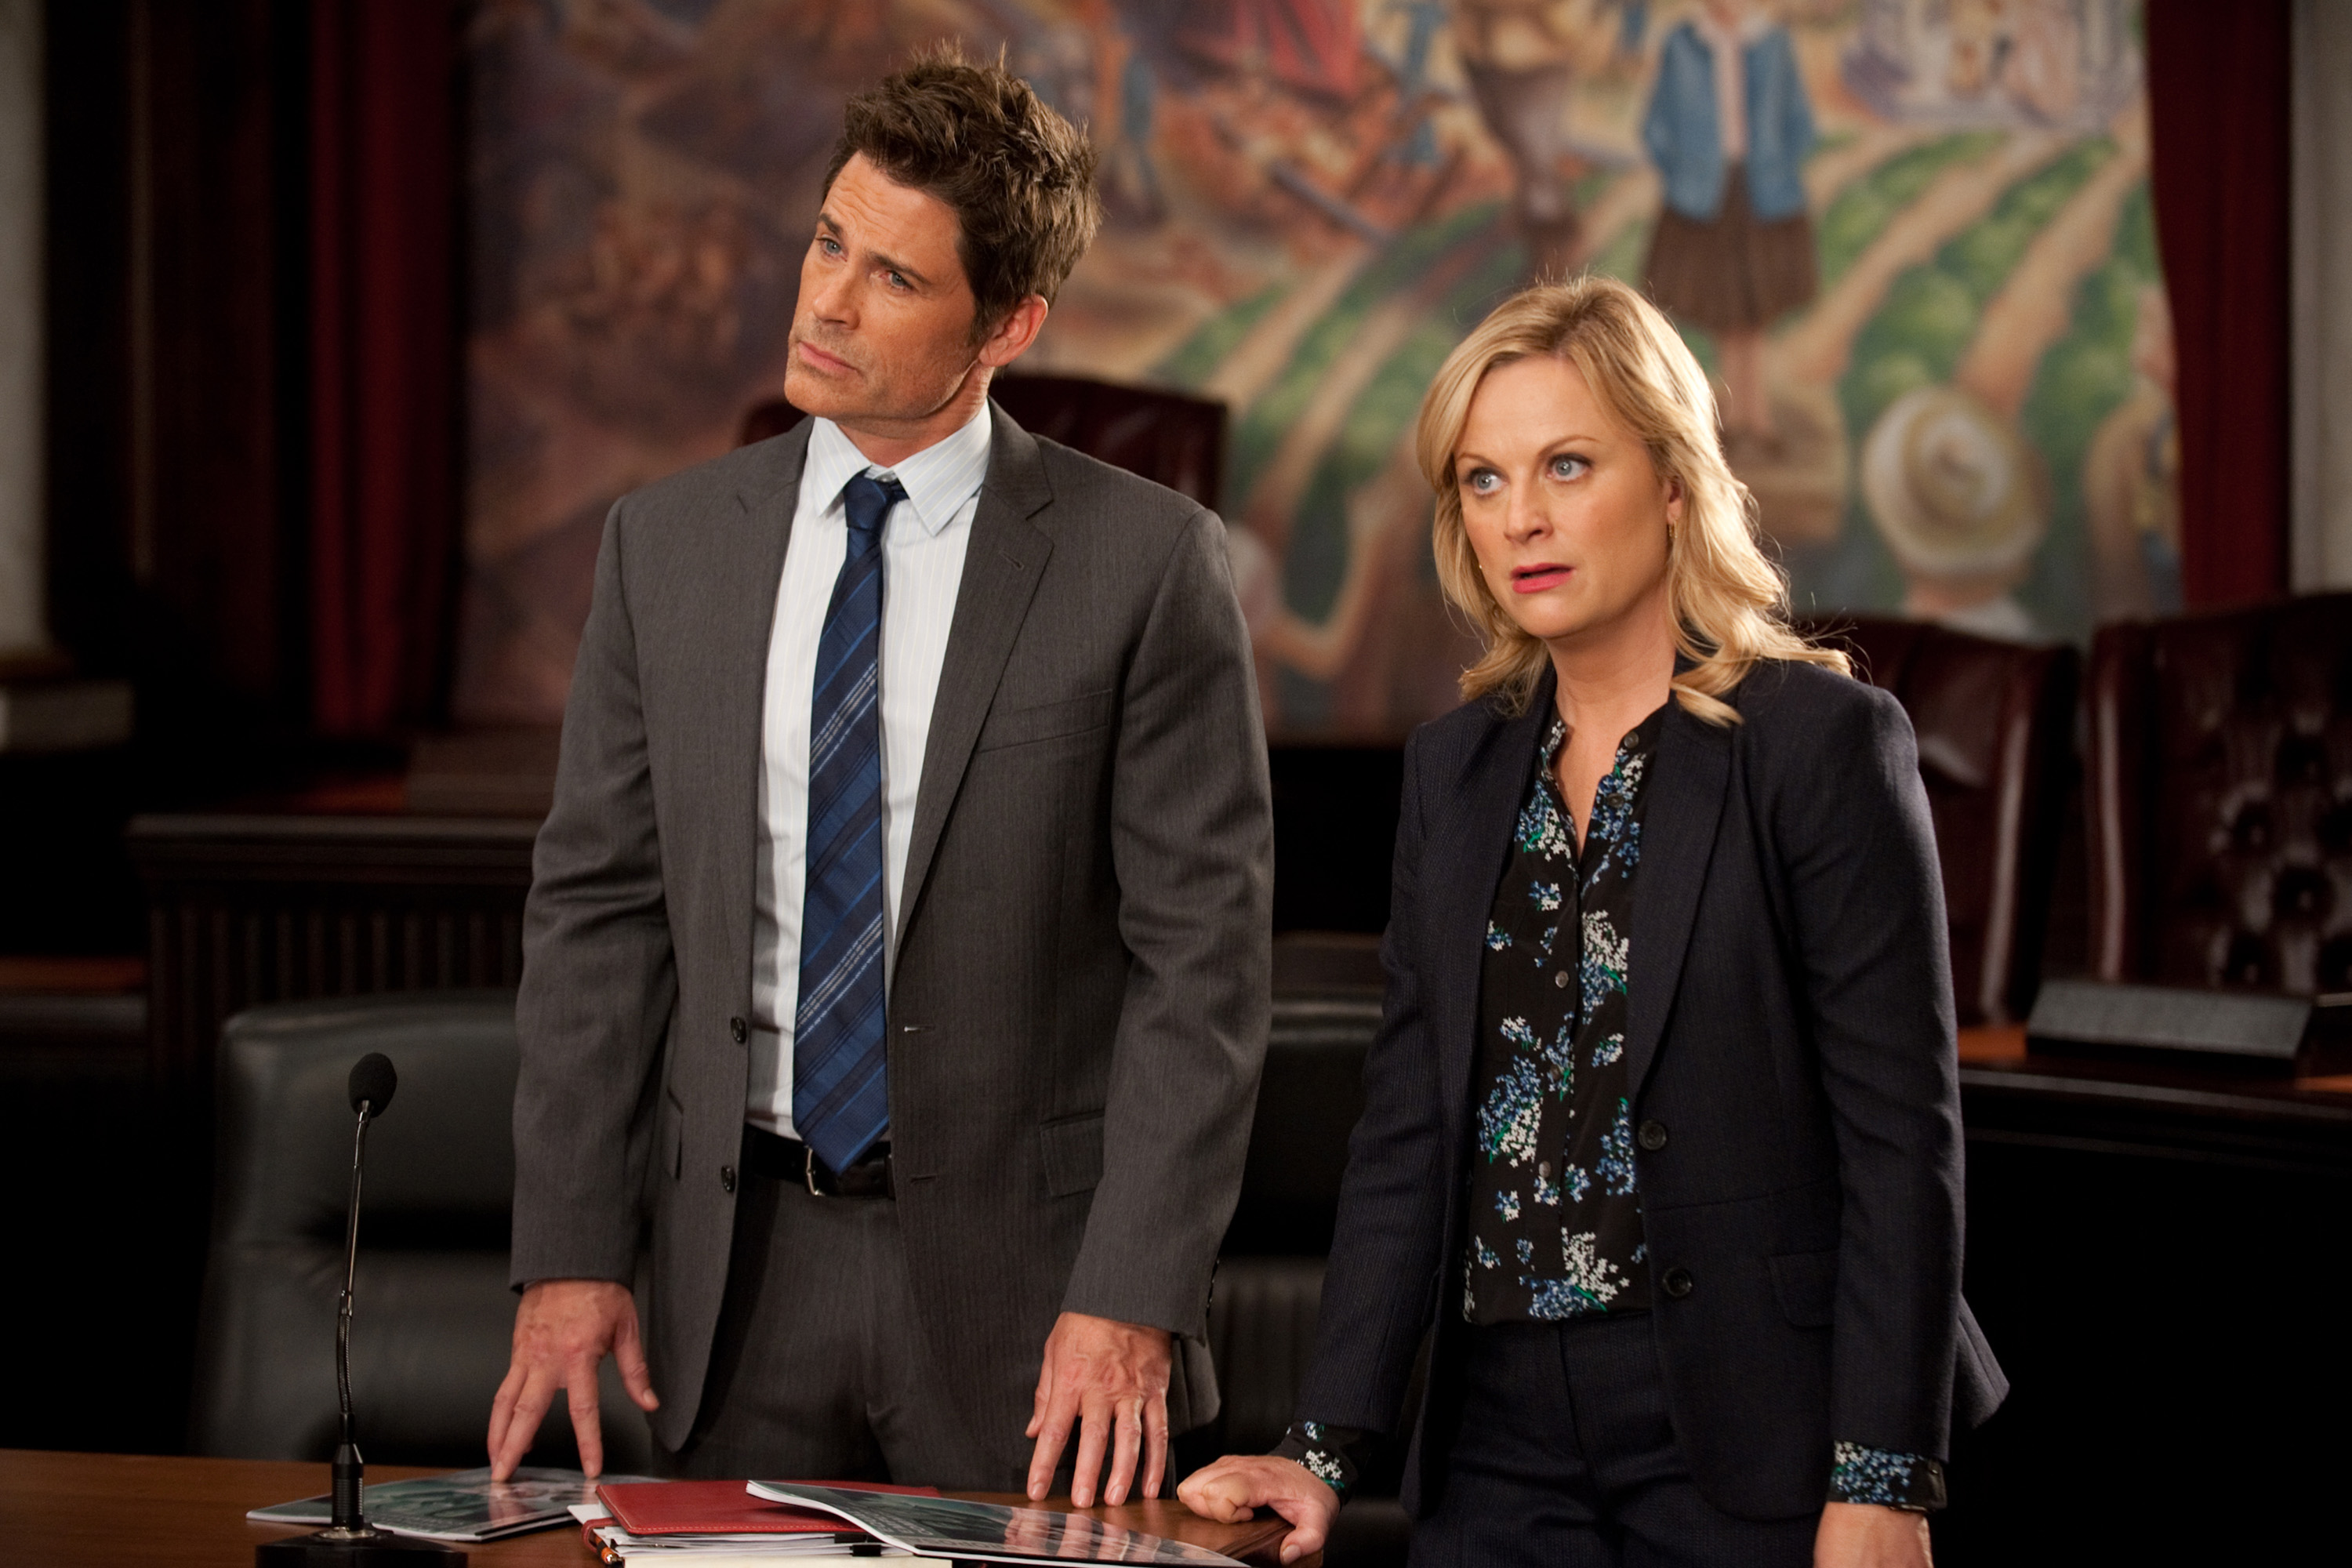 Even Rob Lowe agrees —in 2048 Leslie Knope is president